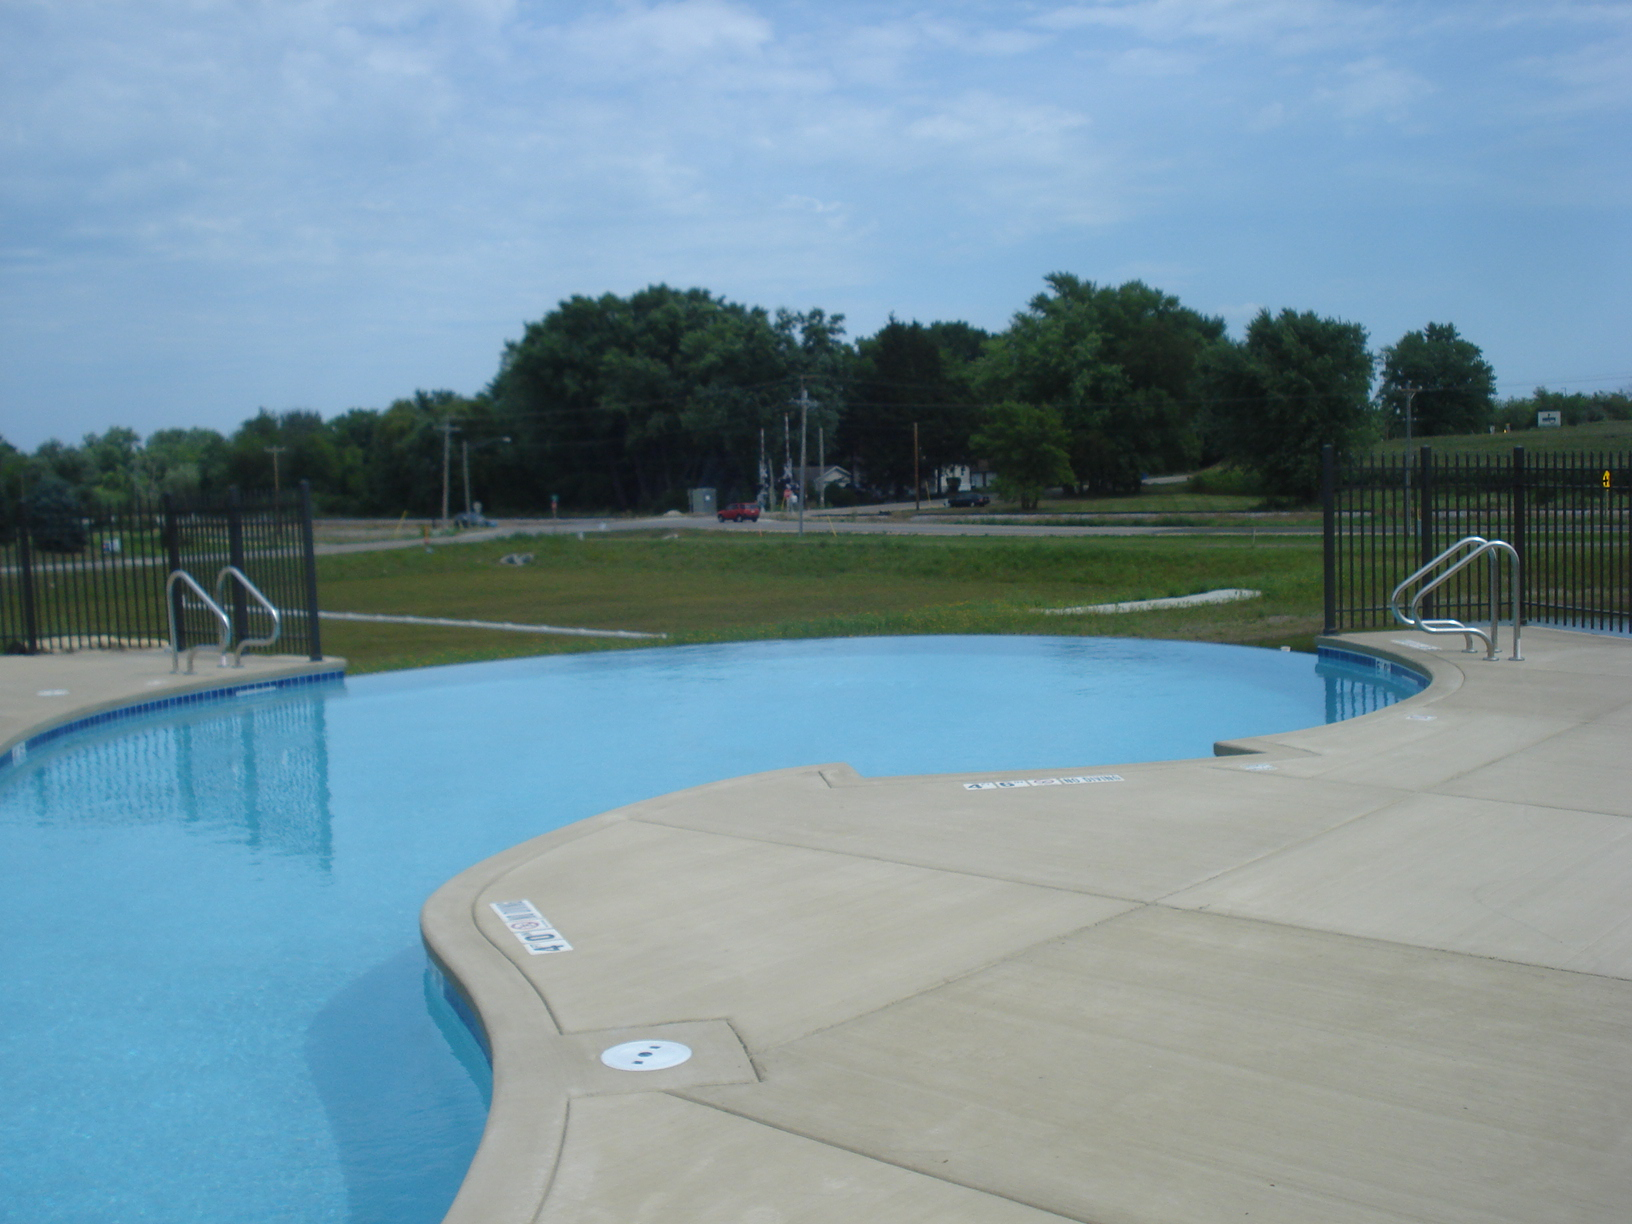 Outdoor pool area at The Addison in Fitchburg, WI